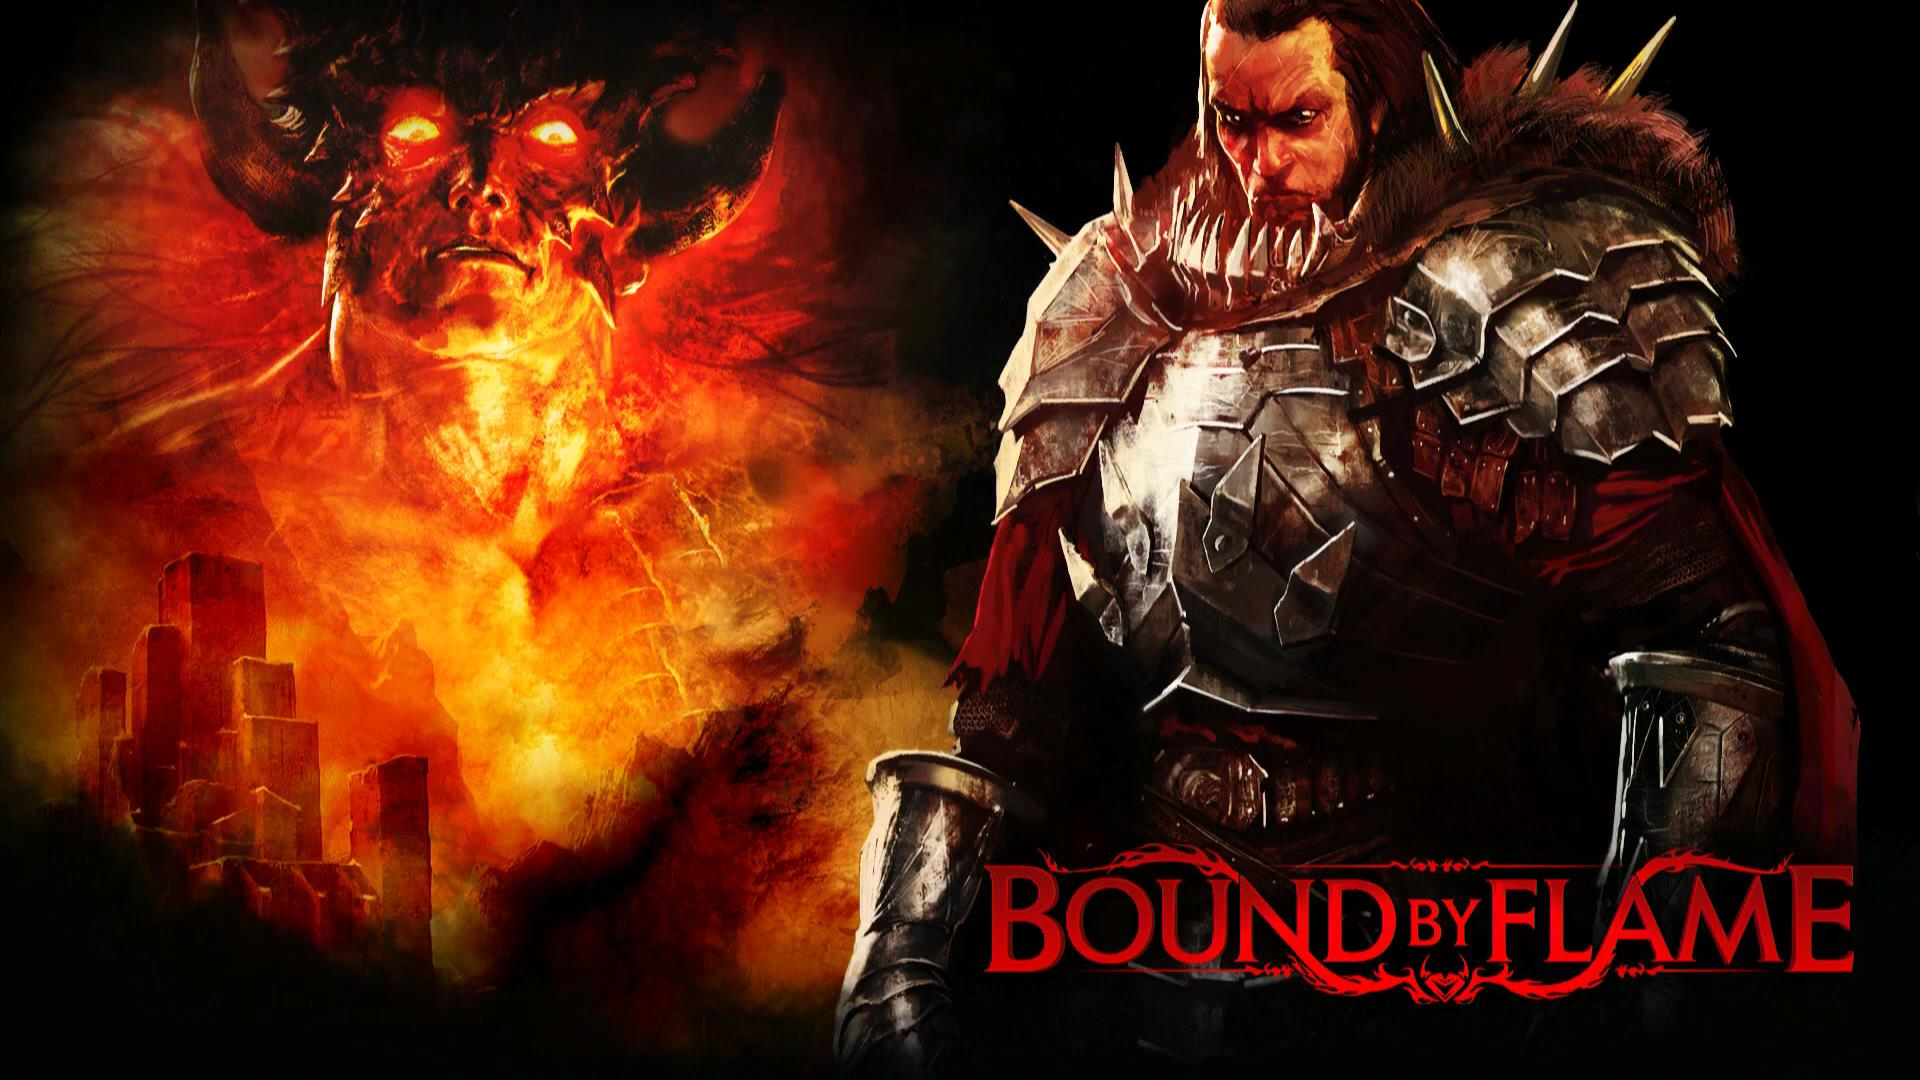 Bound By flame (2014)